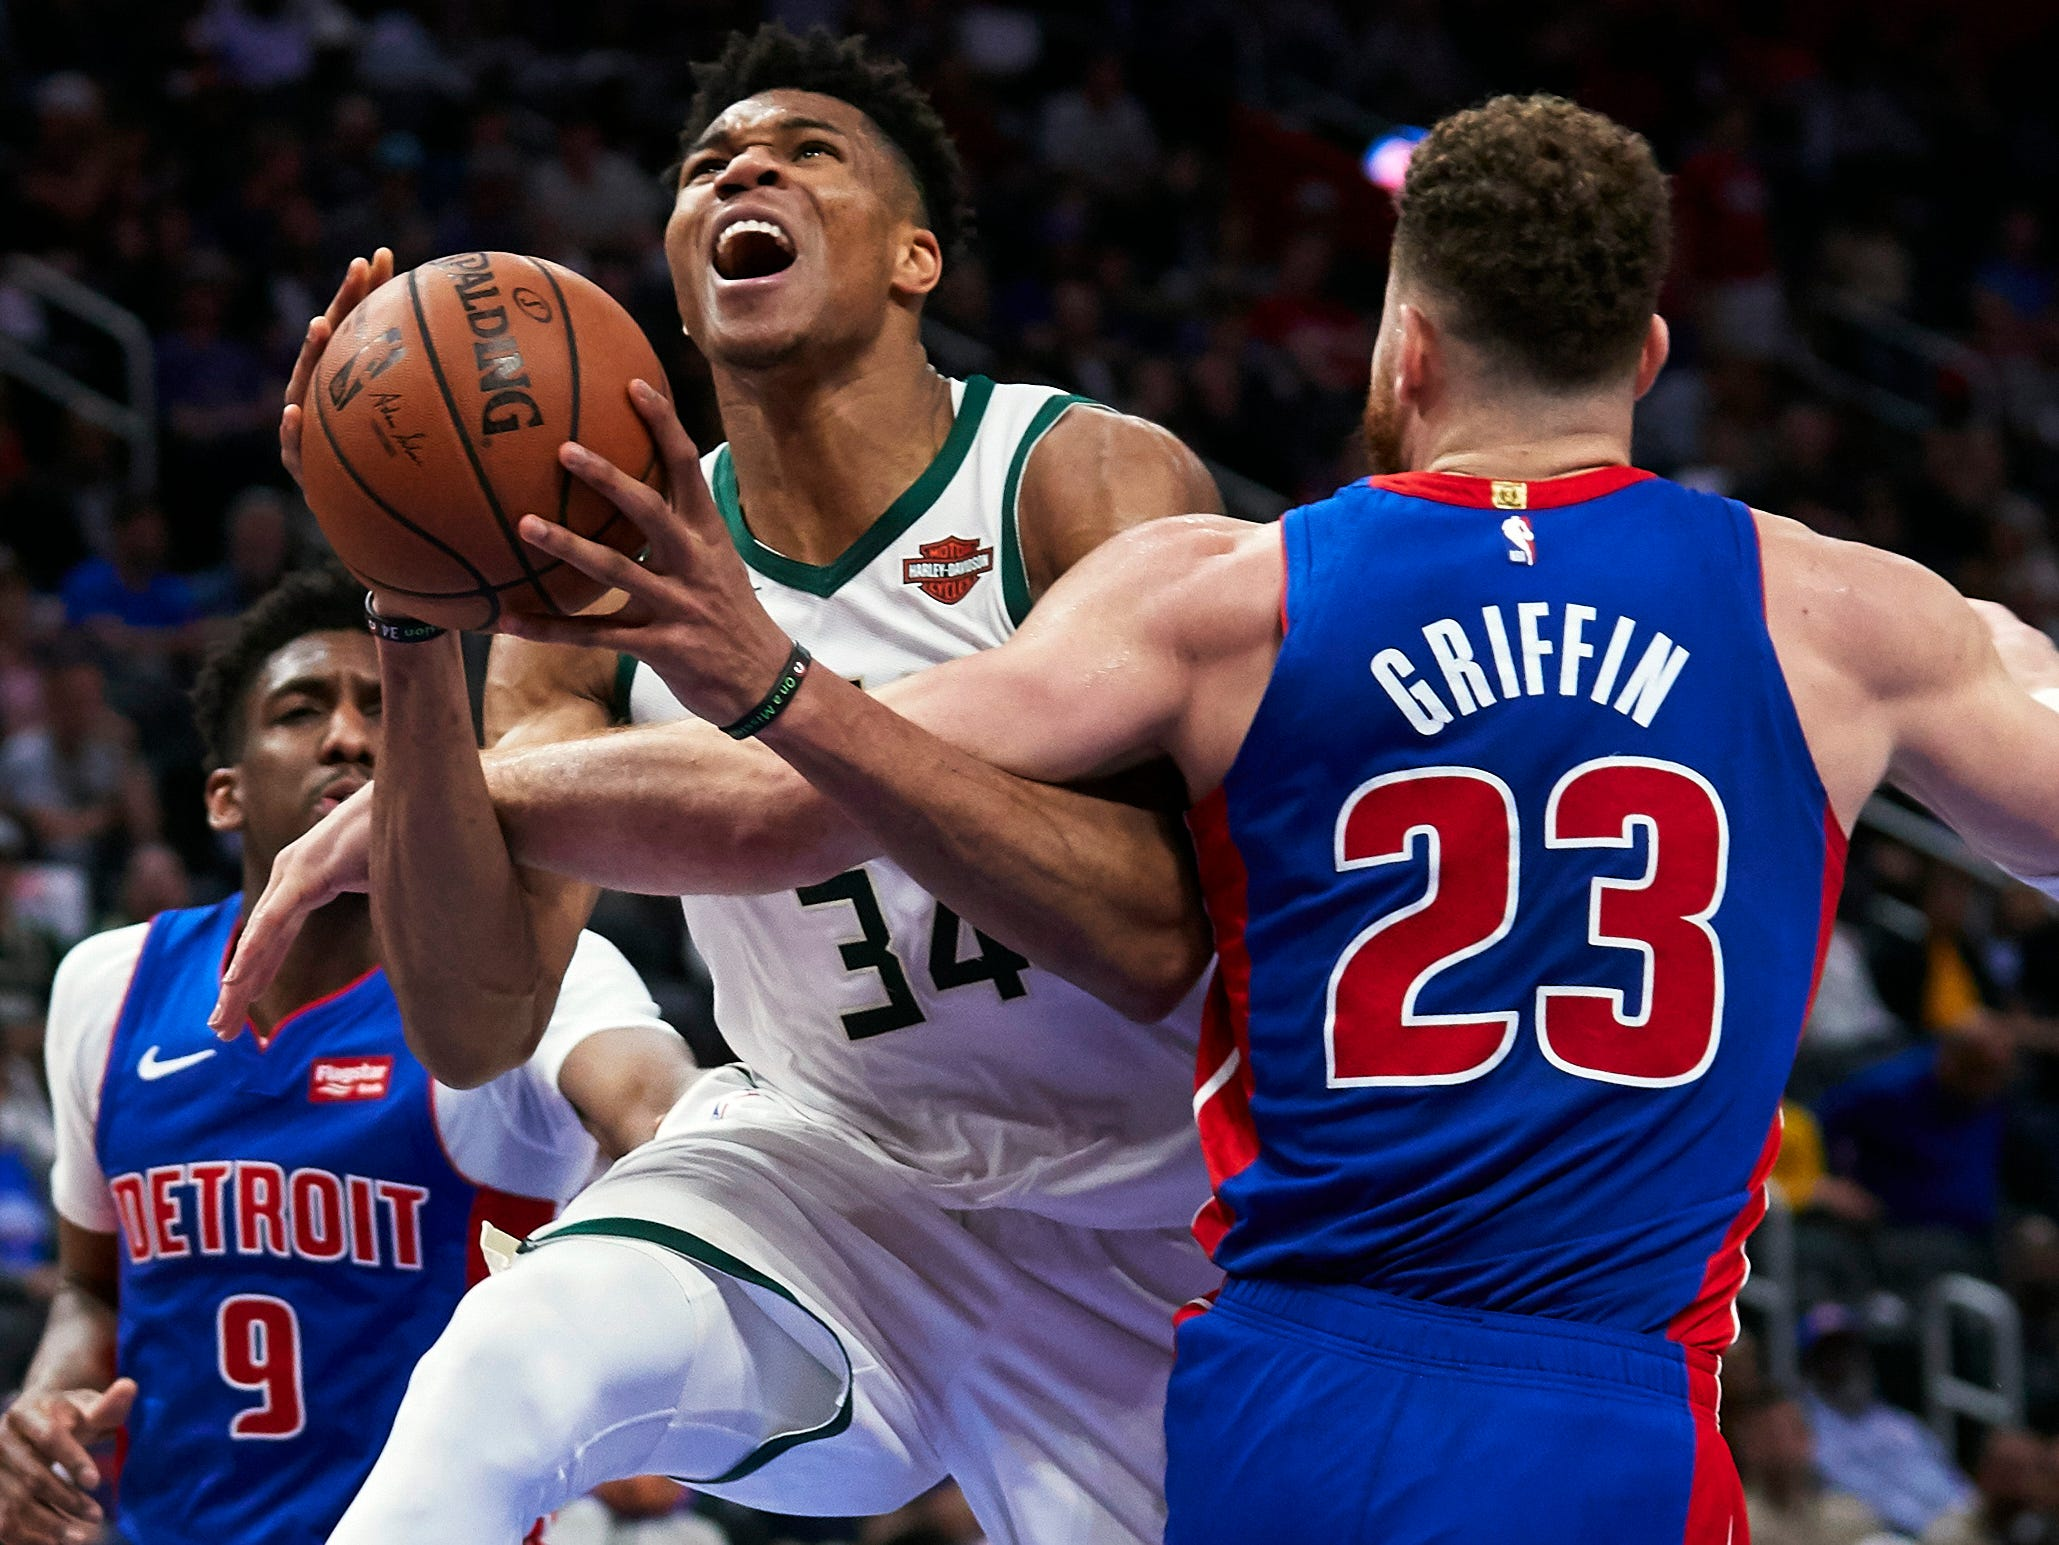 April 22: Bucks forward Giannis Antetokounmpo (34) drives and draws the foul on Pistons defender Blake Griffin (23) during Game 4 in Detroit.